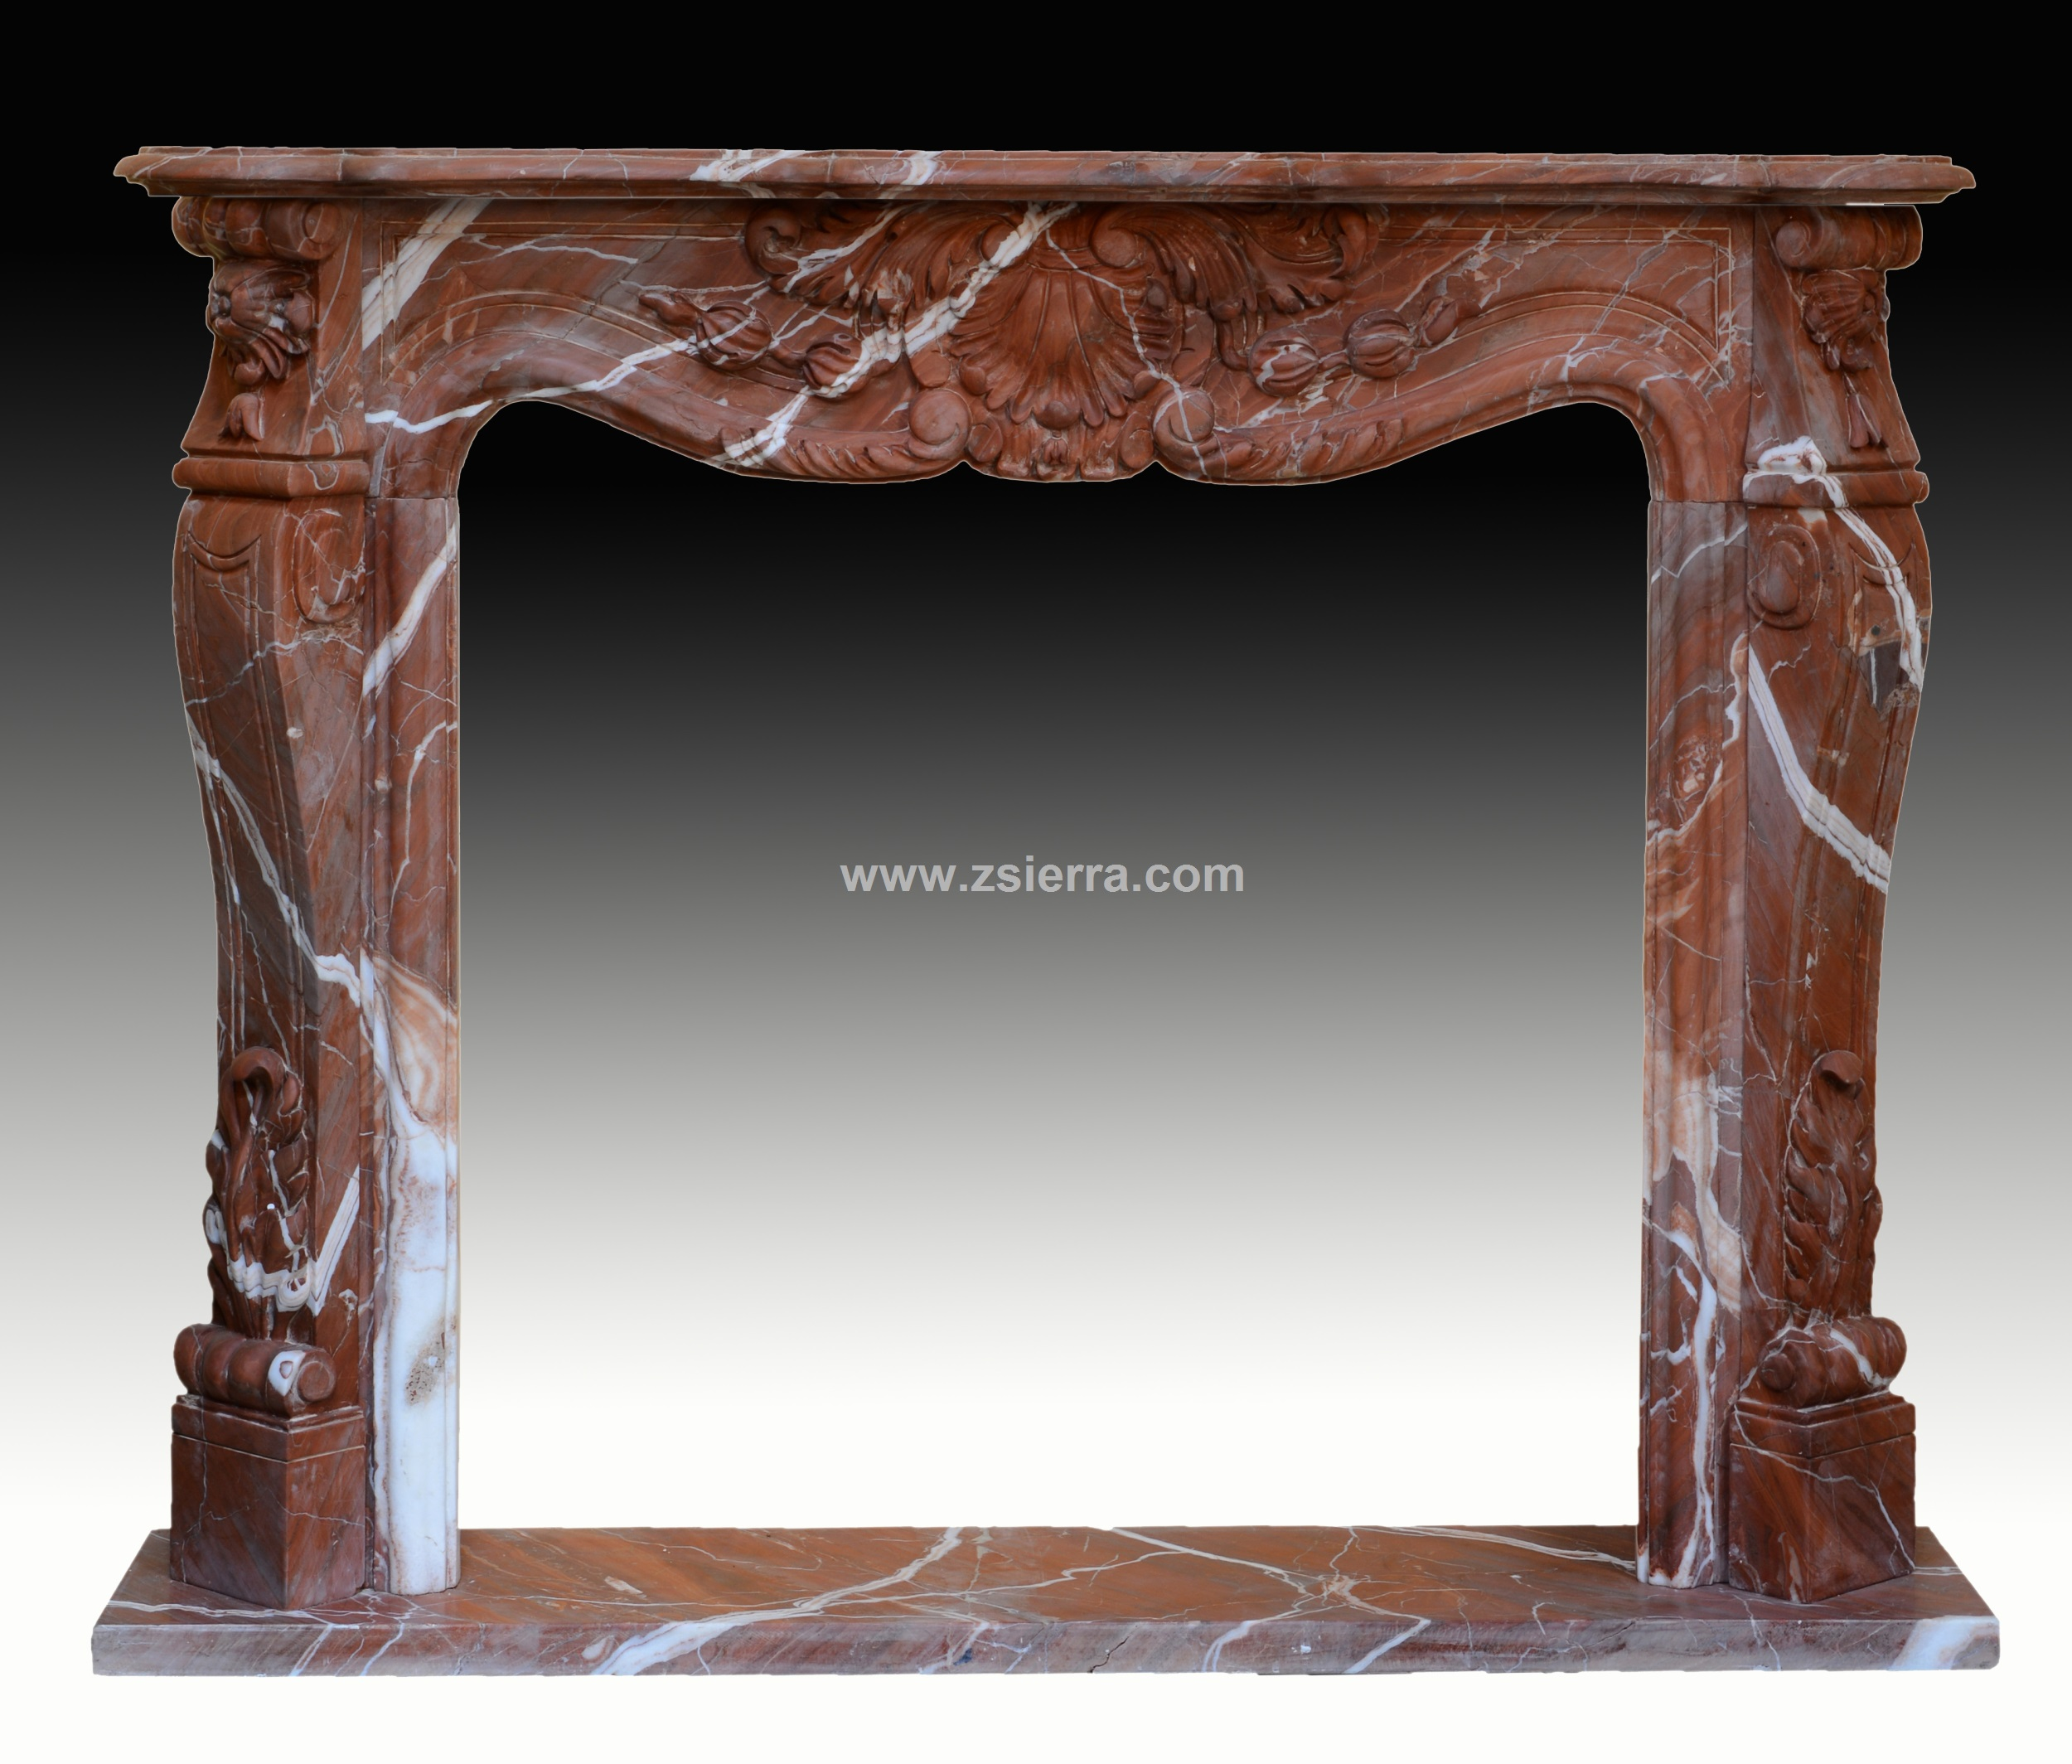 Z Sierra Antiques And Decorative Objects Red Marble Fireplace Surround After French Louis Xv Style Marble Sculptures Decoration